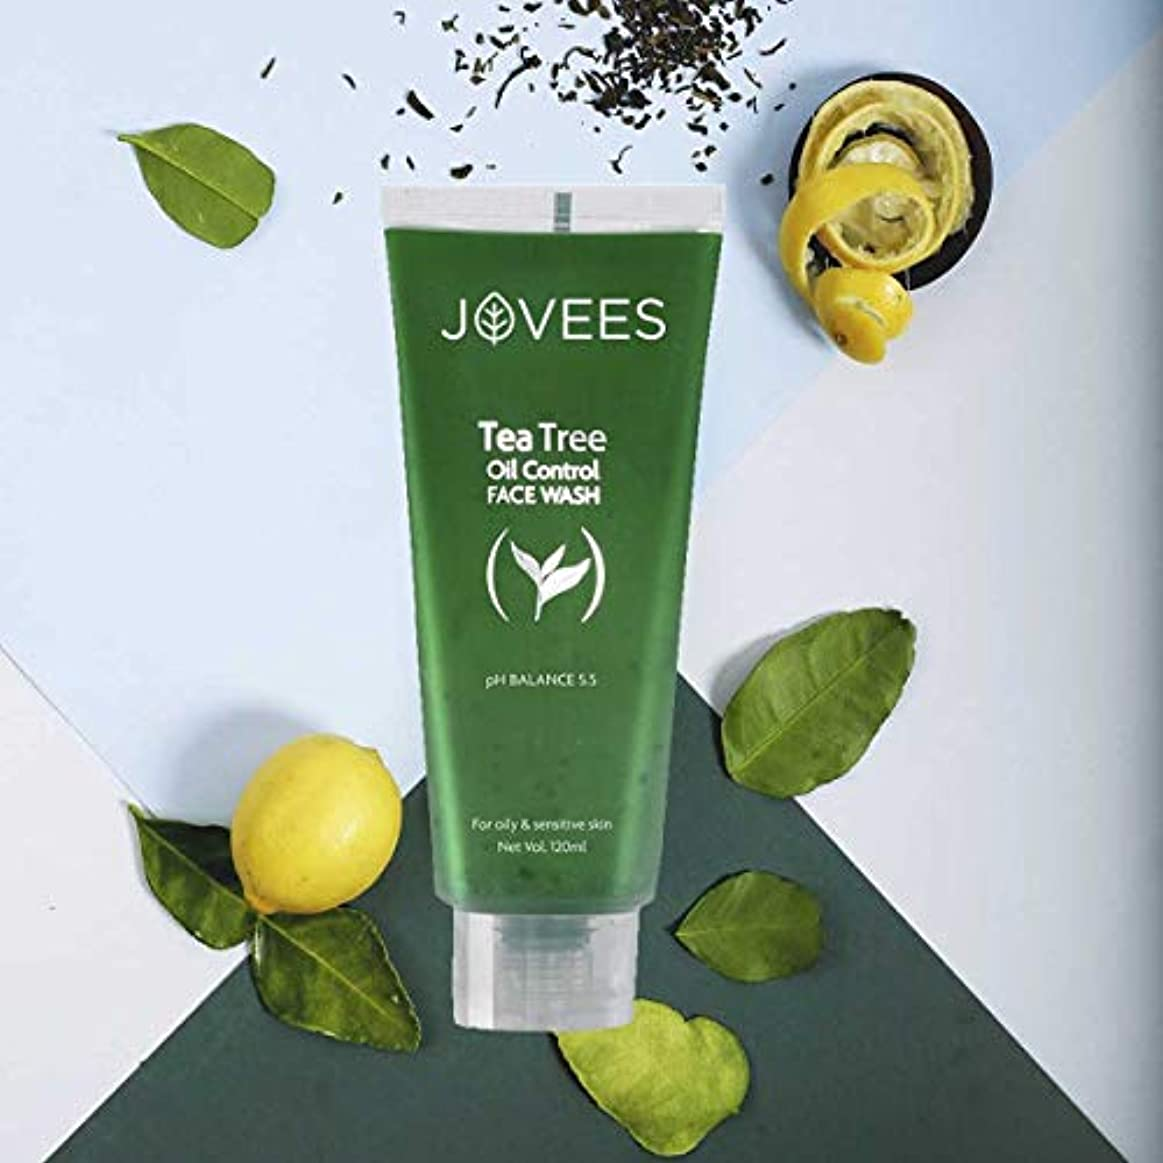 Jovees Tea Tree Oil Control Face Wash 120ml Best for oily & sensitive skin control acne ティーツリーオイルコントロールフェイスウォッシュ...